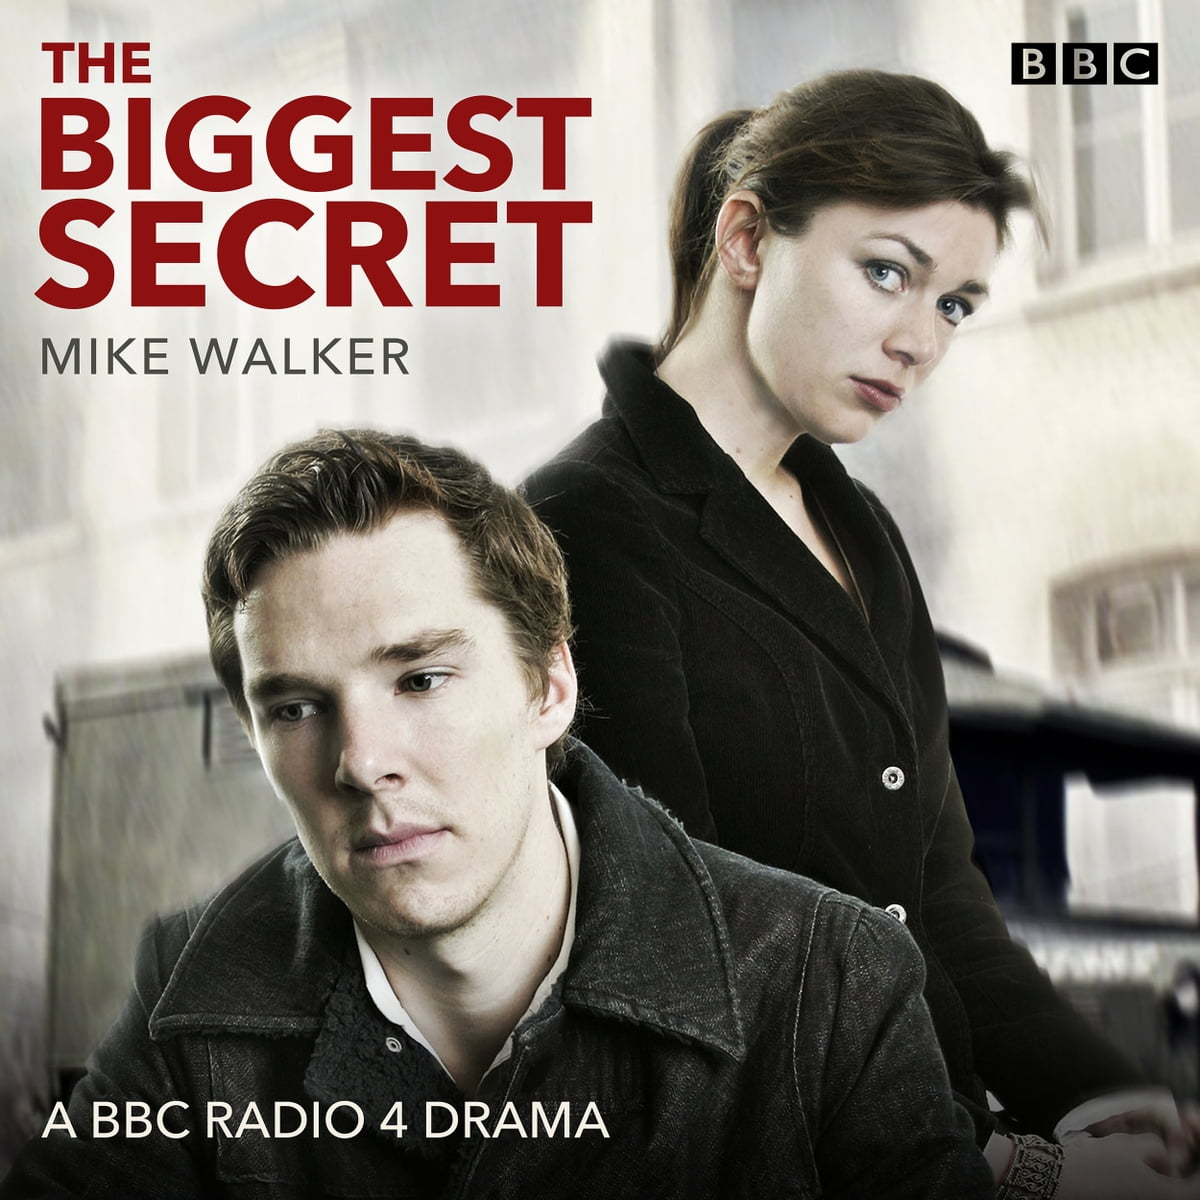 The Biggest Secret audiobook by Mike Walker - Rakuten Kobo